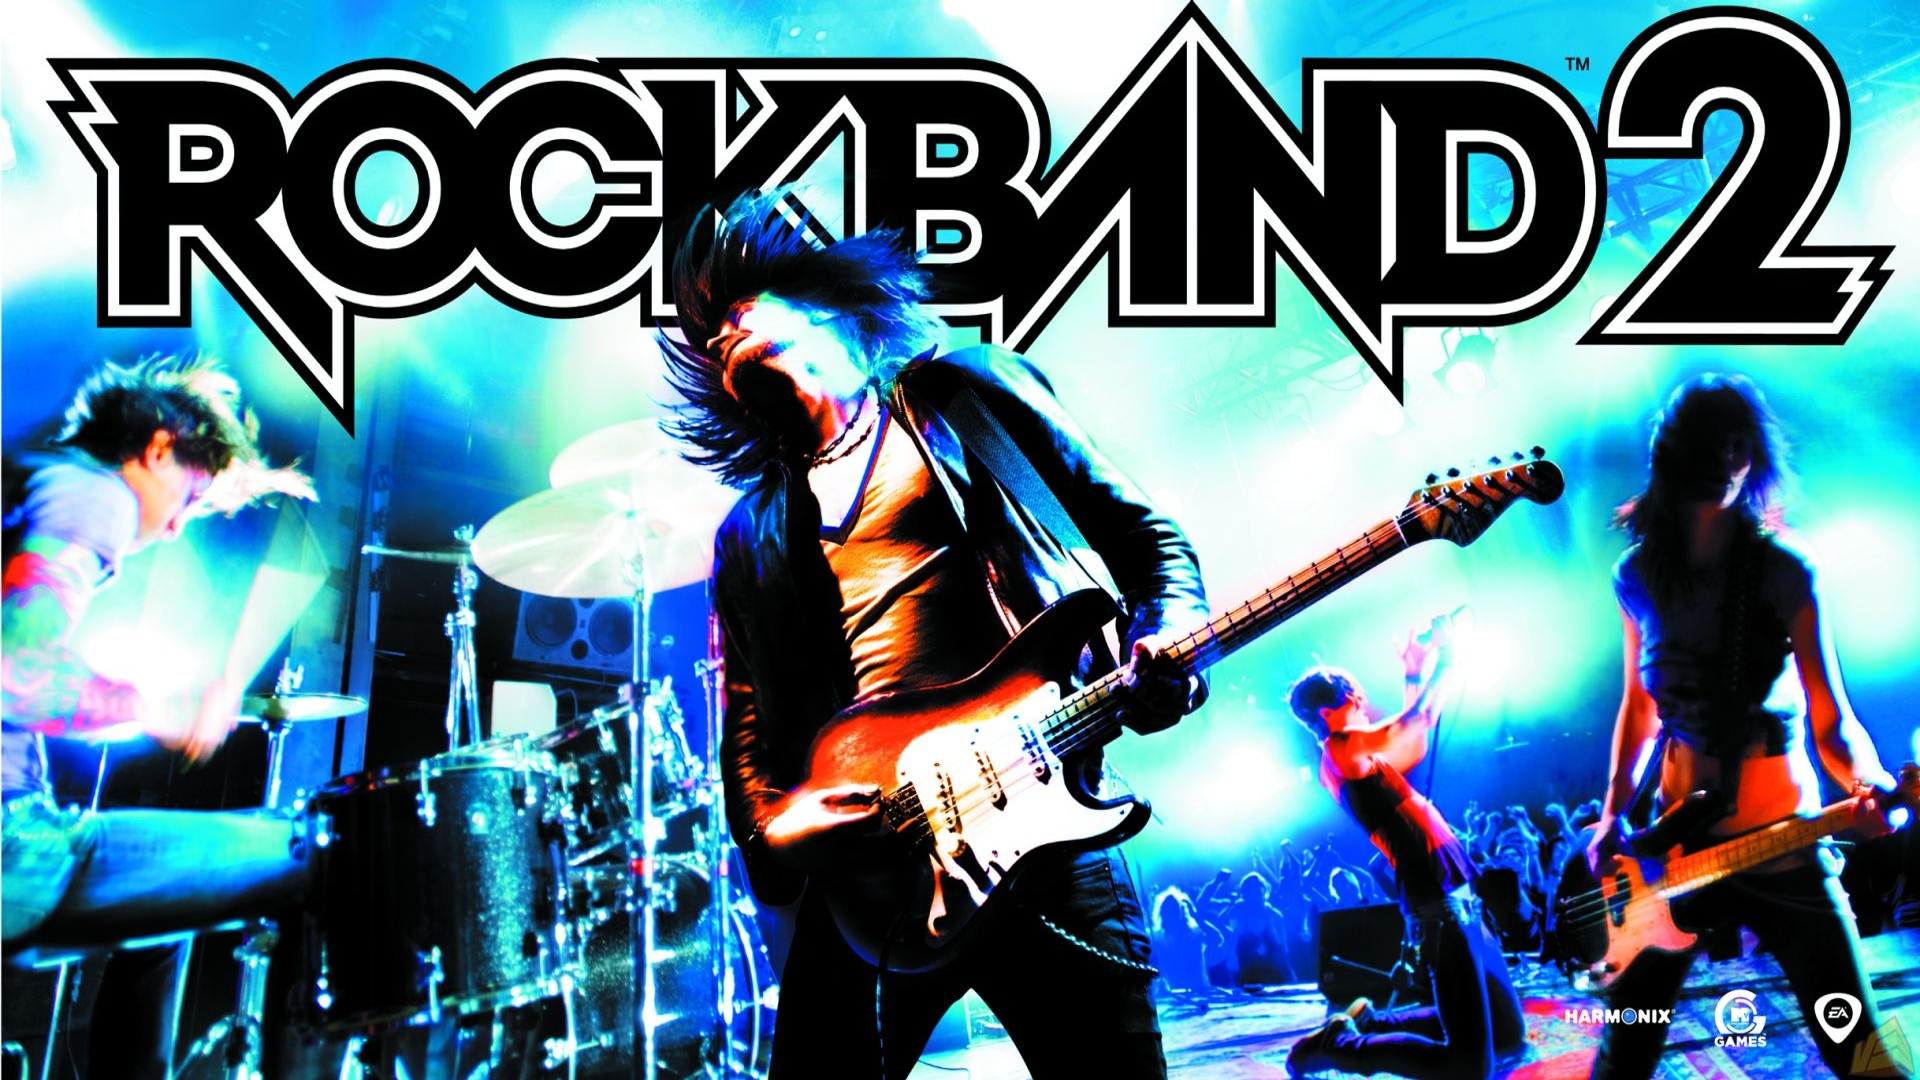 rock band 2 cover submitted by waggly bean rock band 2 title submitted ...